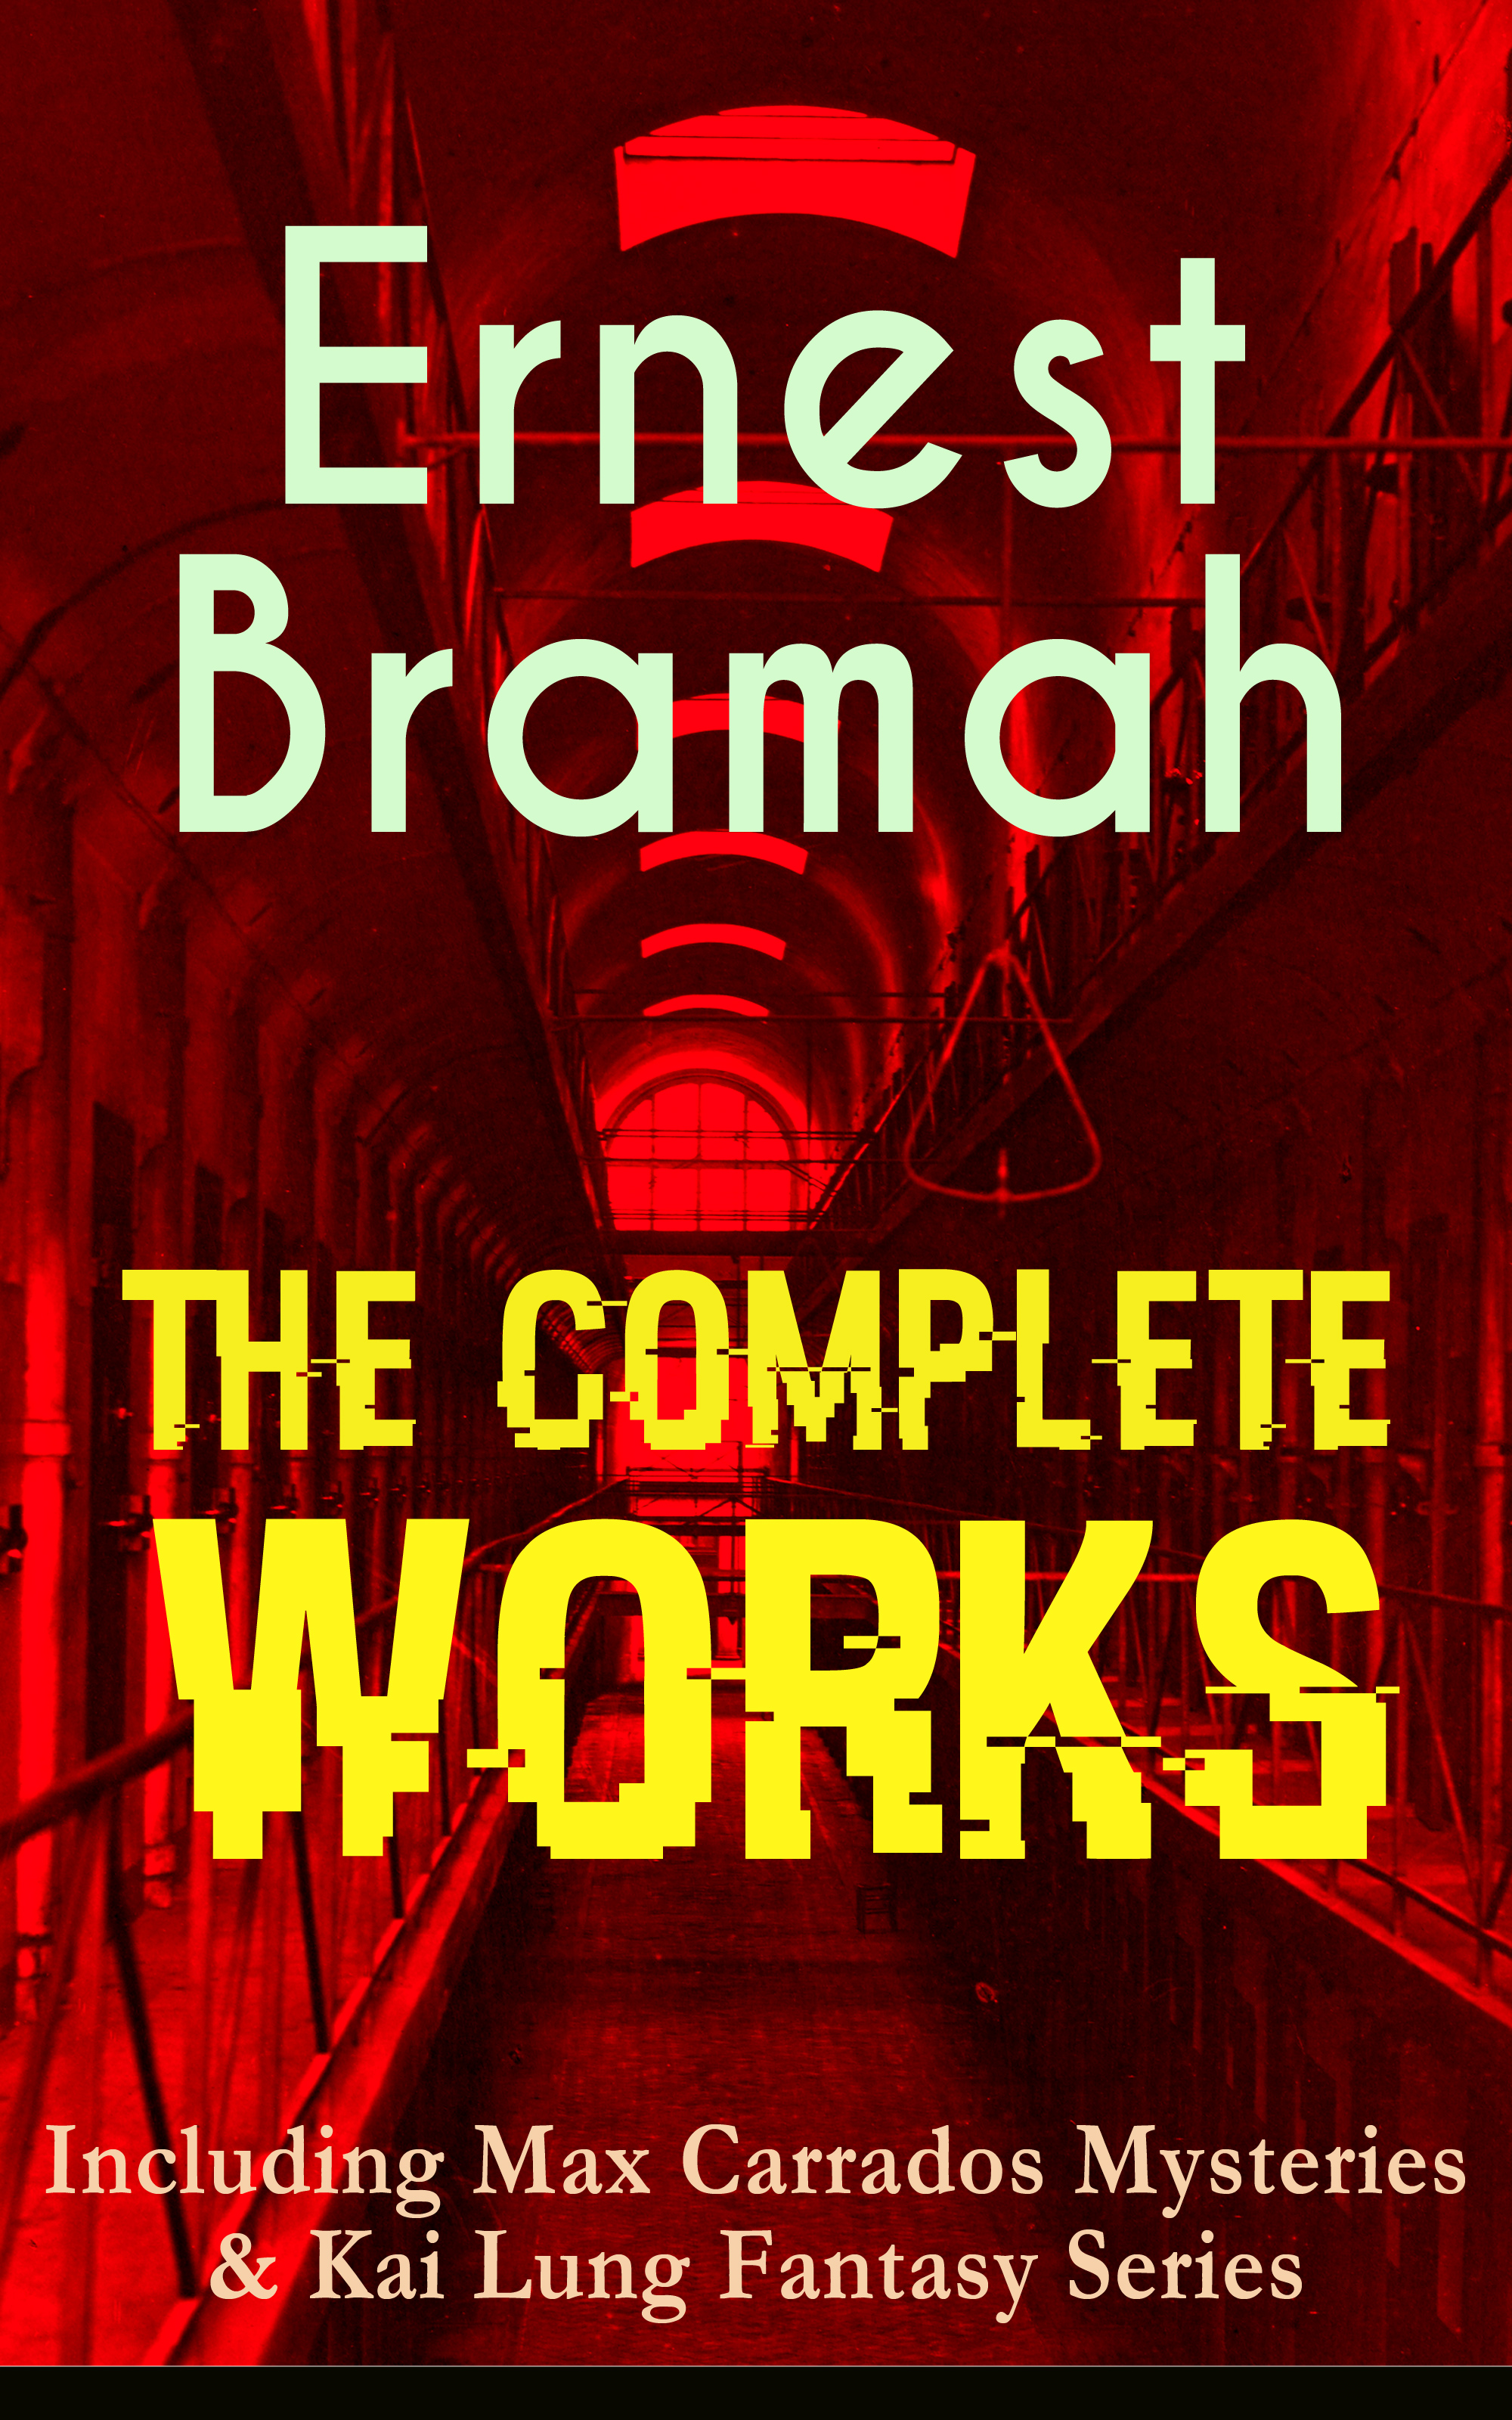 The Complete Works of Ernest Bramah (Including Max Carrados Mysteries #and# Kai Lung Fantasy Series)